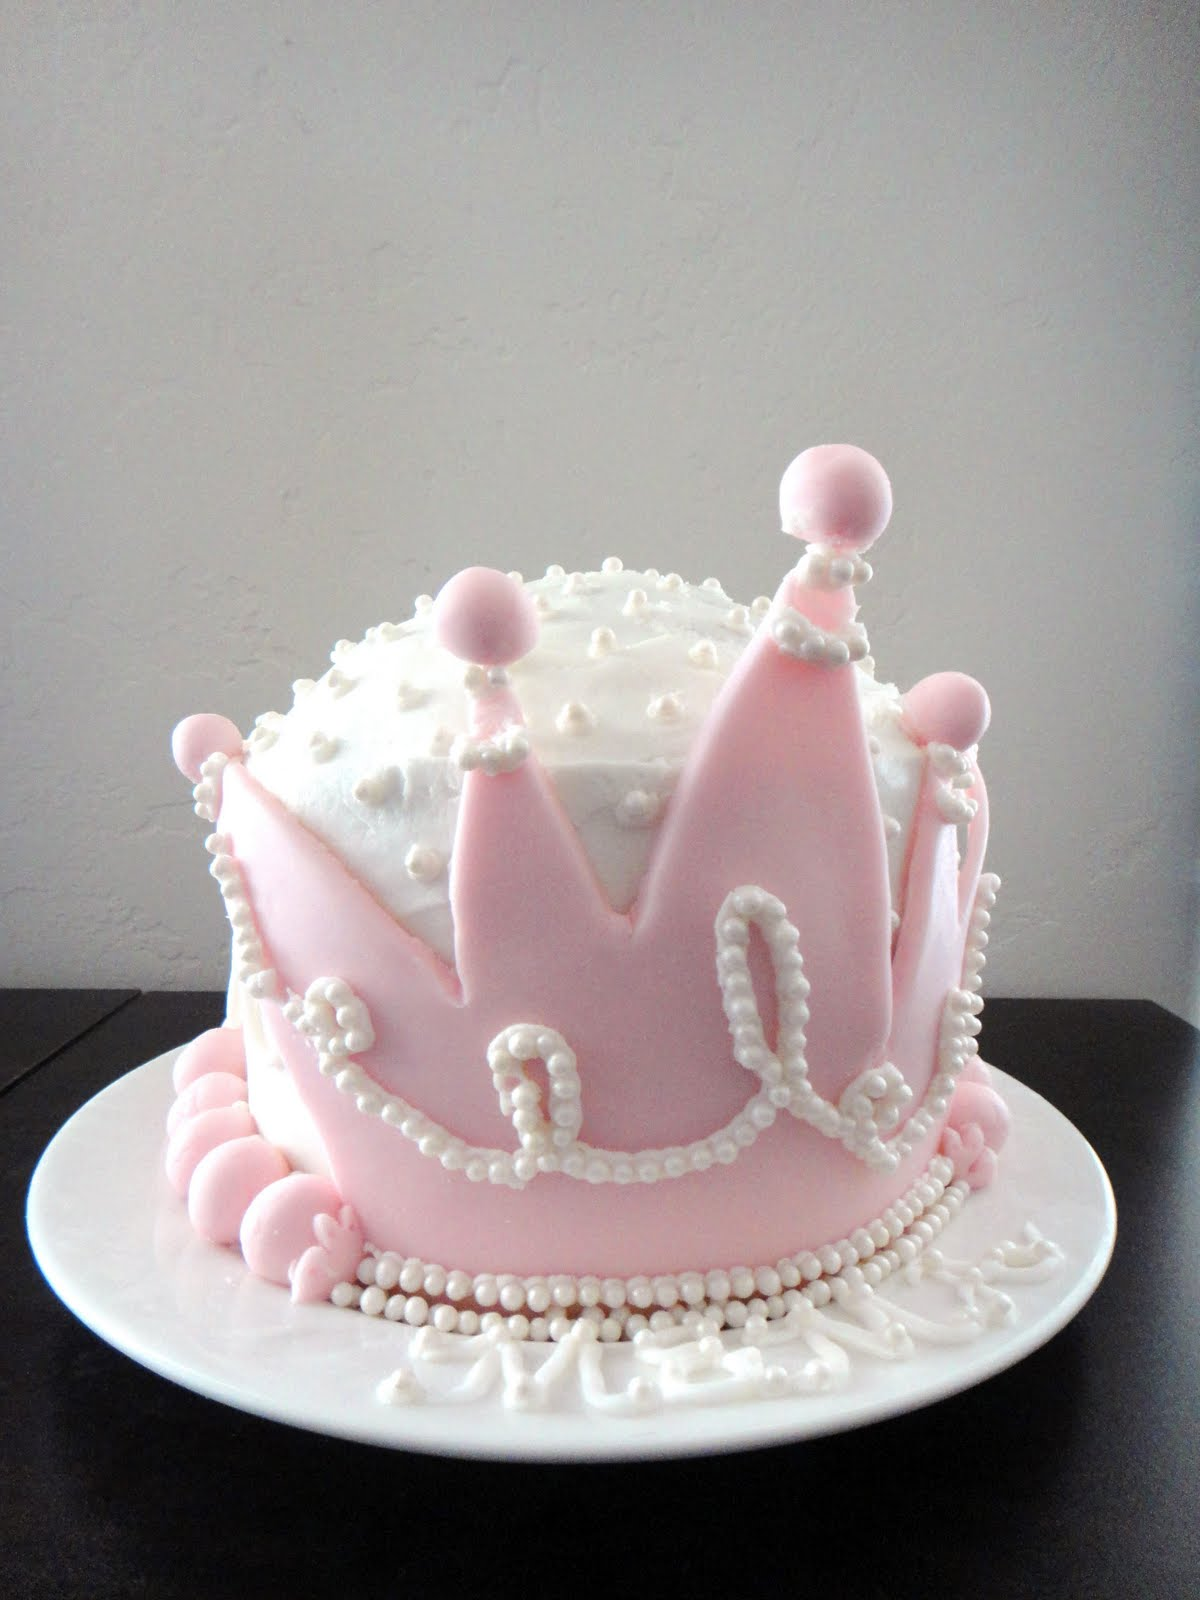 Worth Pinning: A Cake Fit for a Queen